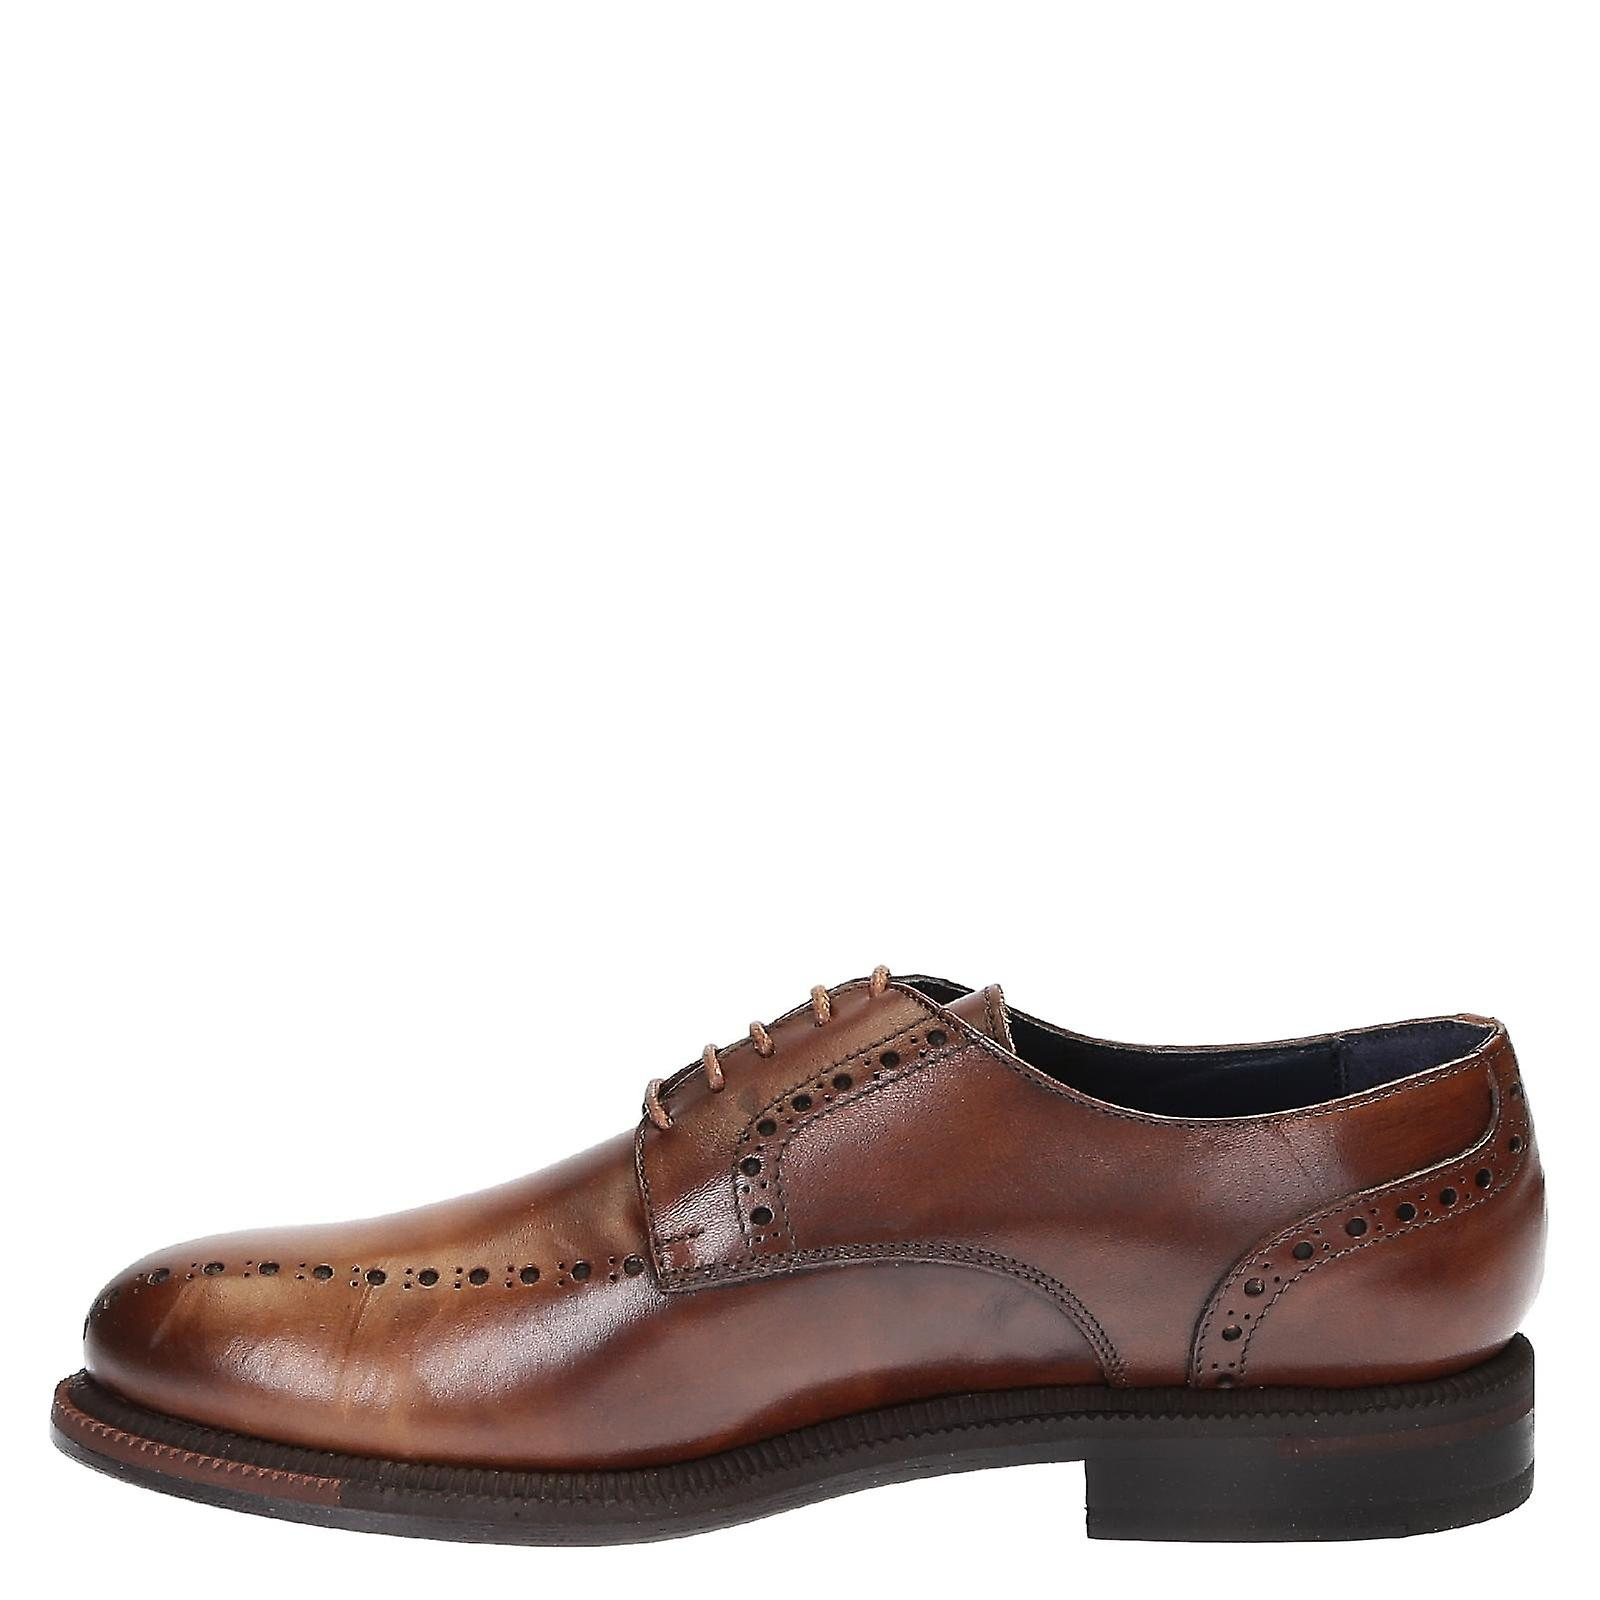 Handmade men's dress shoes in brown leather